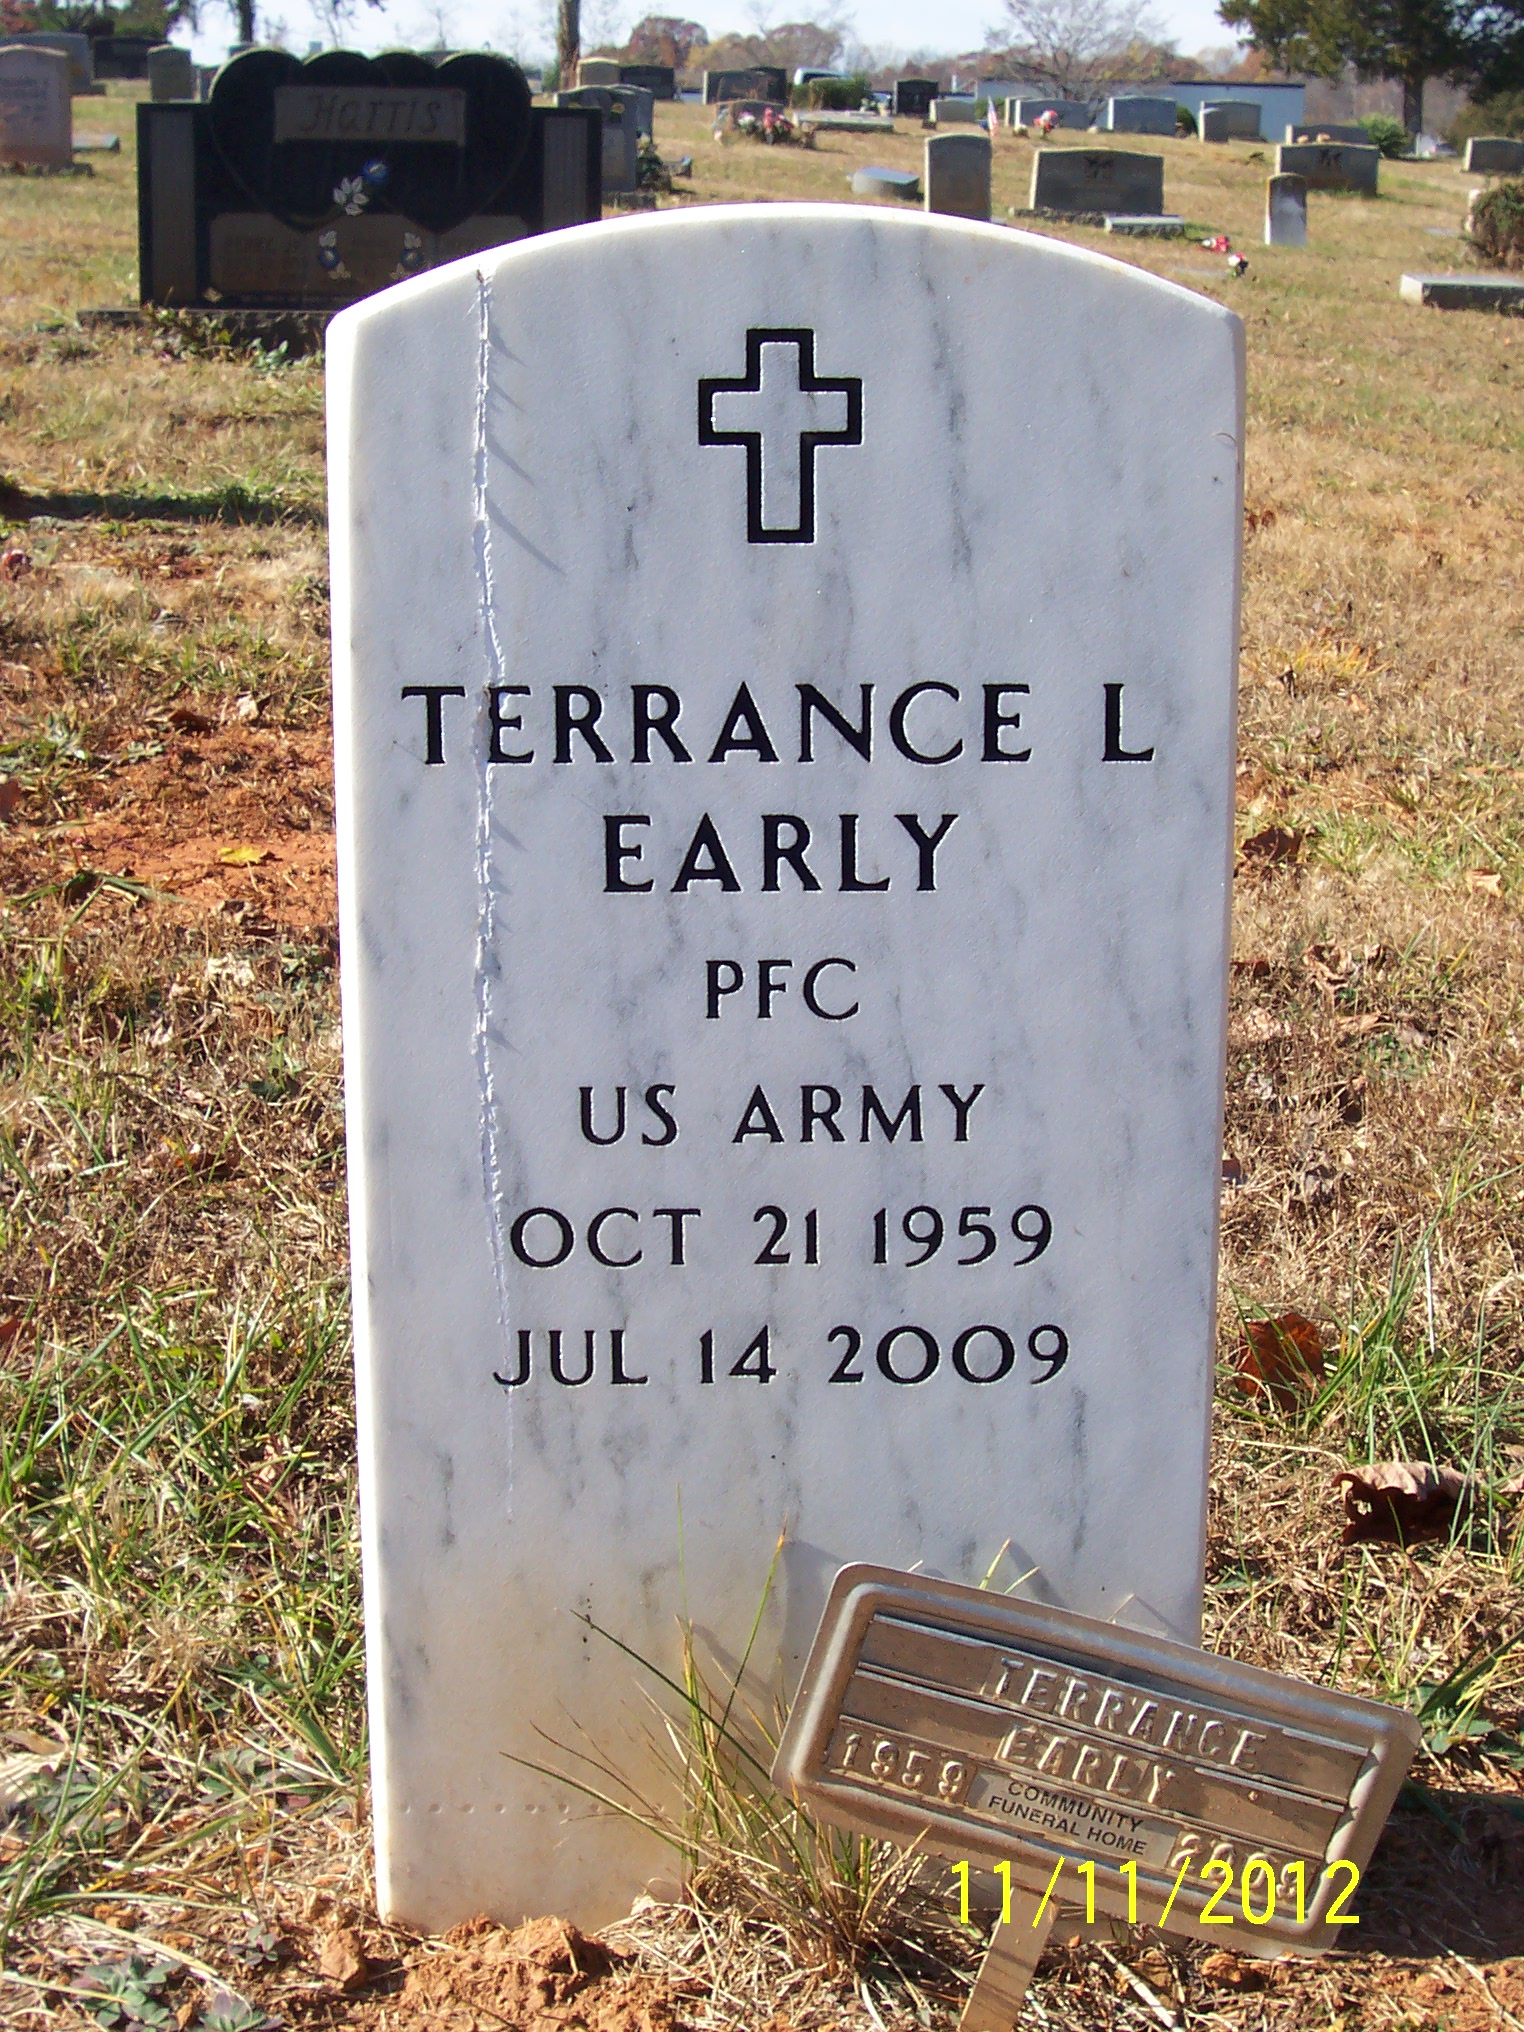 PFC Terrance L Early